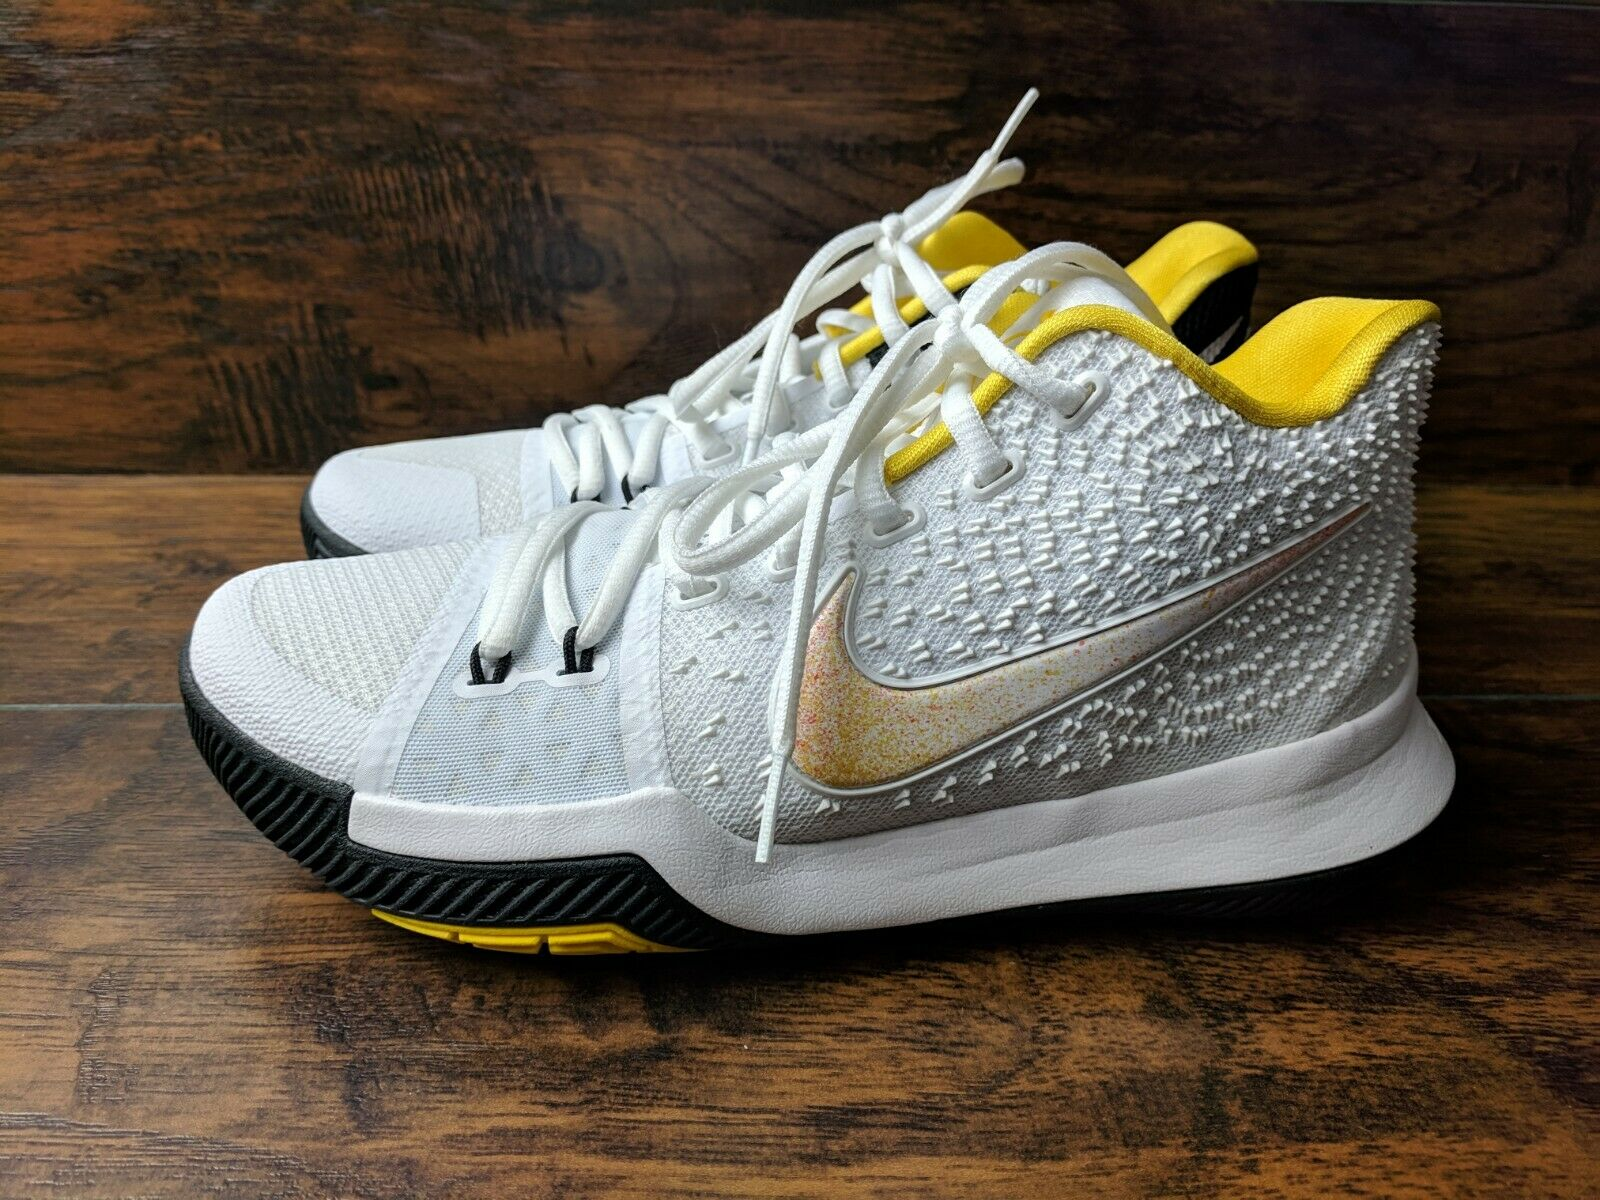 Brand New Nike Kyrie 3 N7 Men's Size 7 Basketball White Yellow Varsity Maize